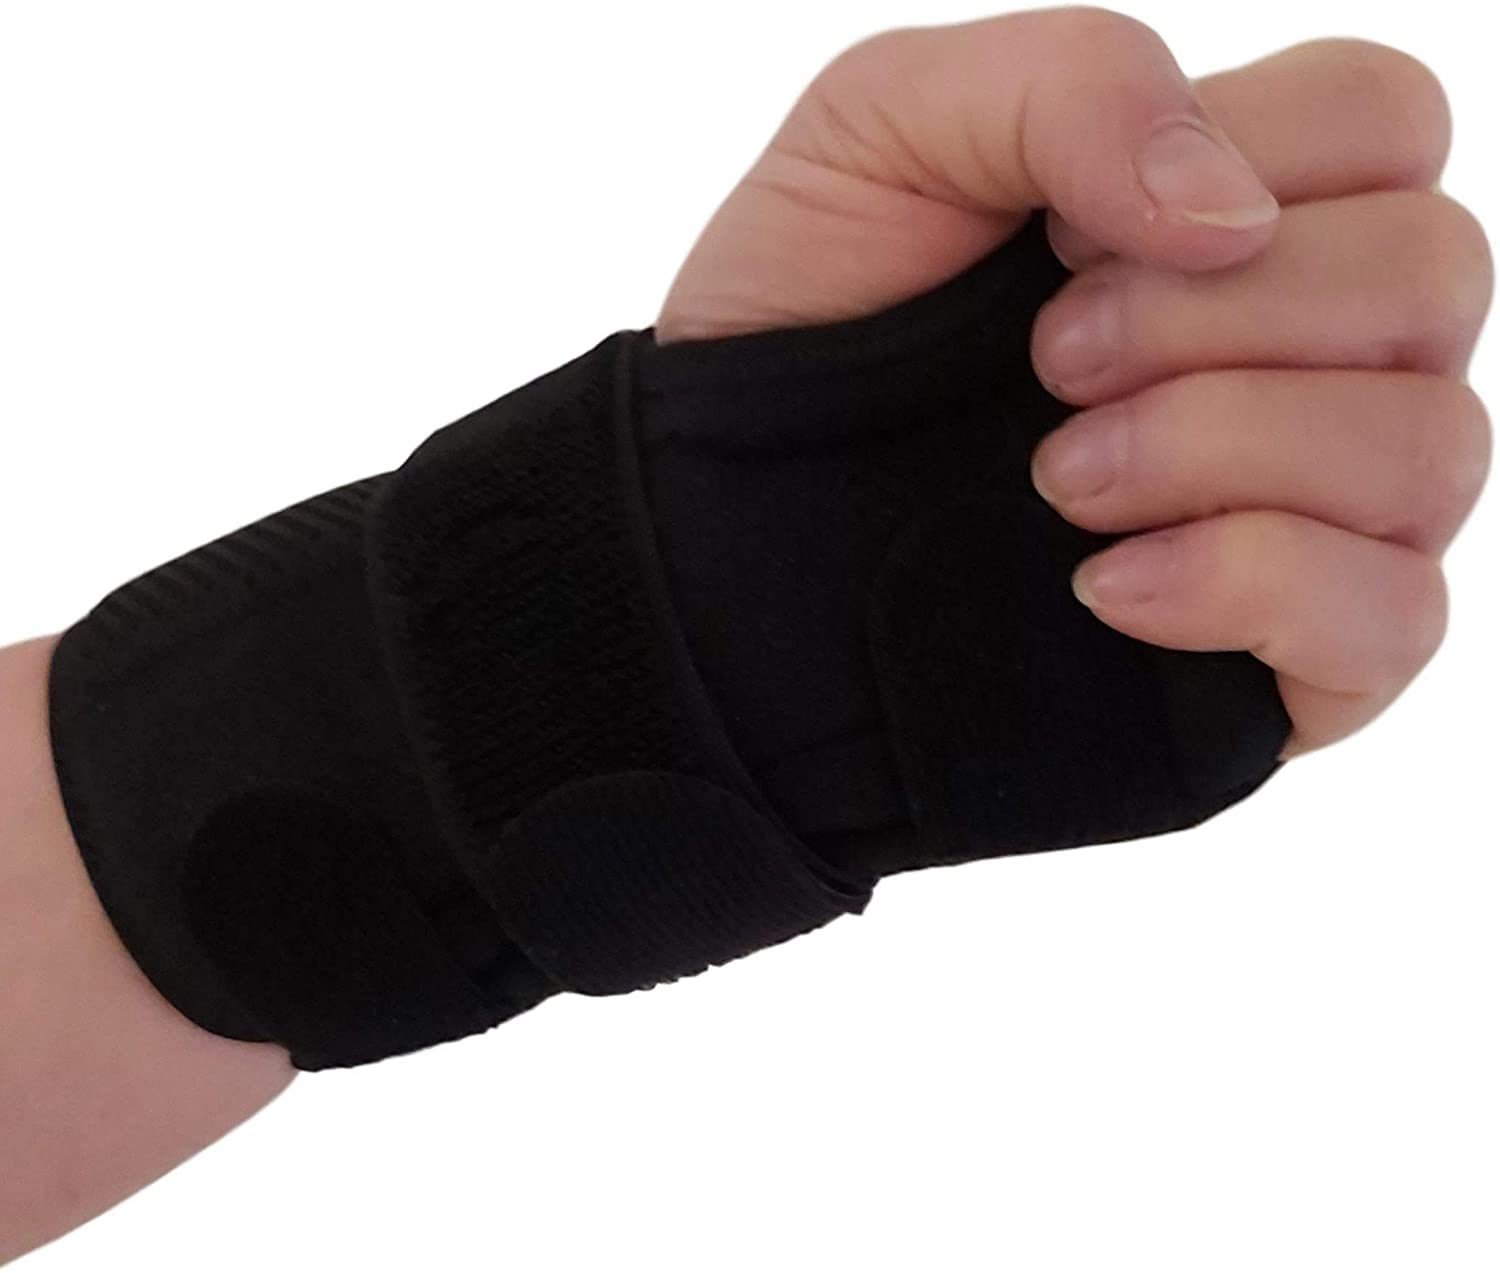 Carpal Tunnel Wrist Brace Night Support – Removable Wrist Splints Arm Stabilizer & Hand Brace for Carpal Tunnel Syndrome Pain Relief with Compression for Forearm or Wrist Tendonitis Pain (Left)